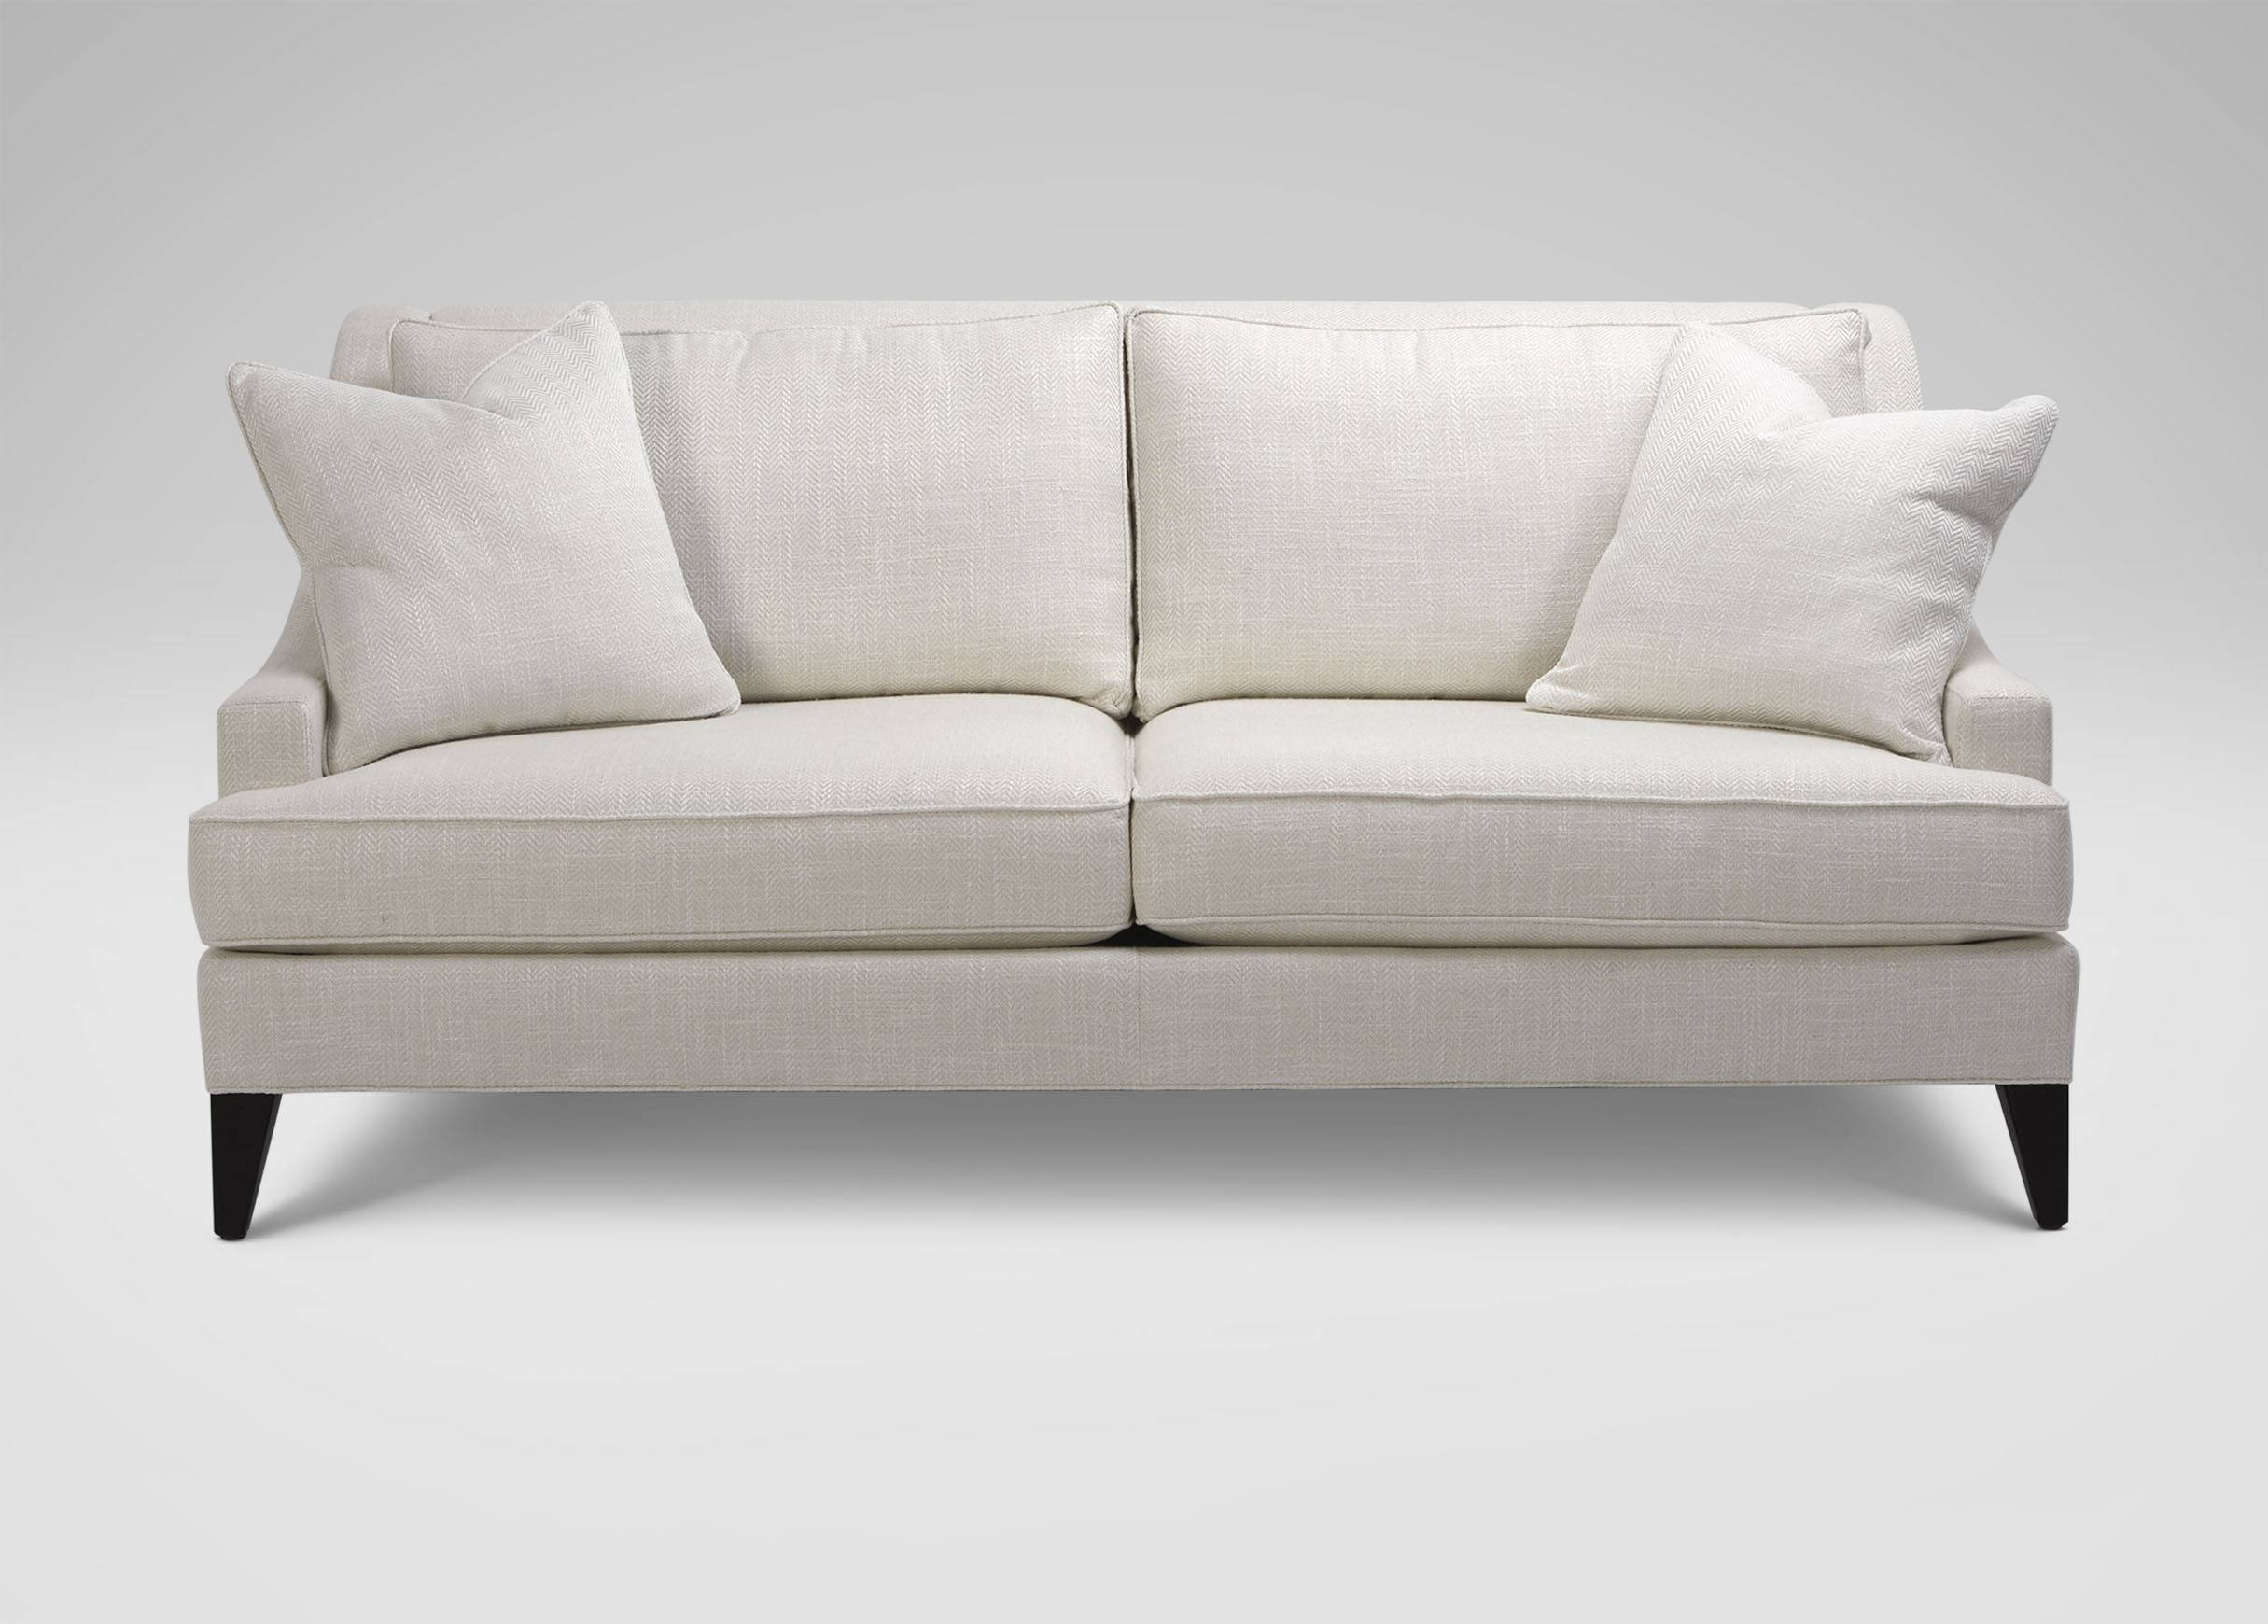 Emerson Sofa | Sofas & Loveseats pertaining to Ethan Allen Sofas and Chairs (Image 3 of 15)